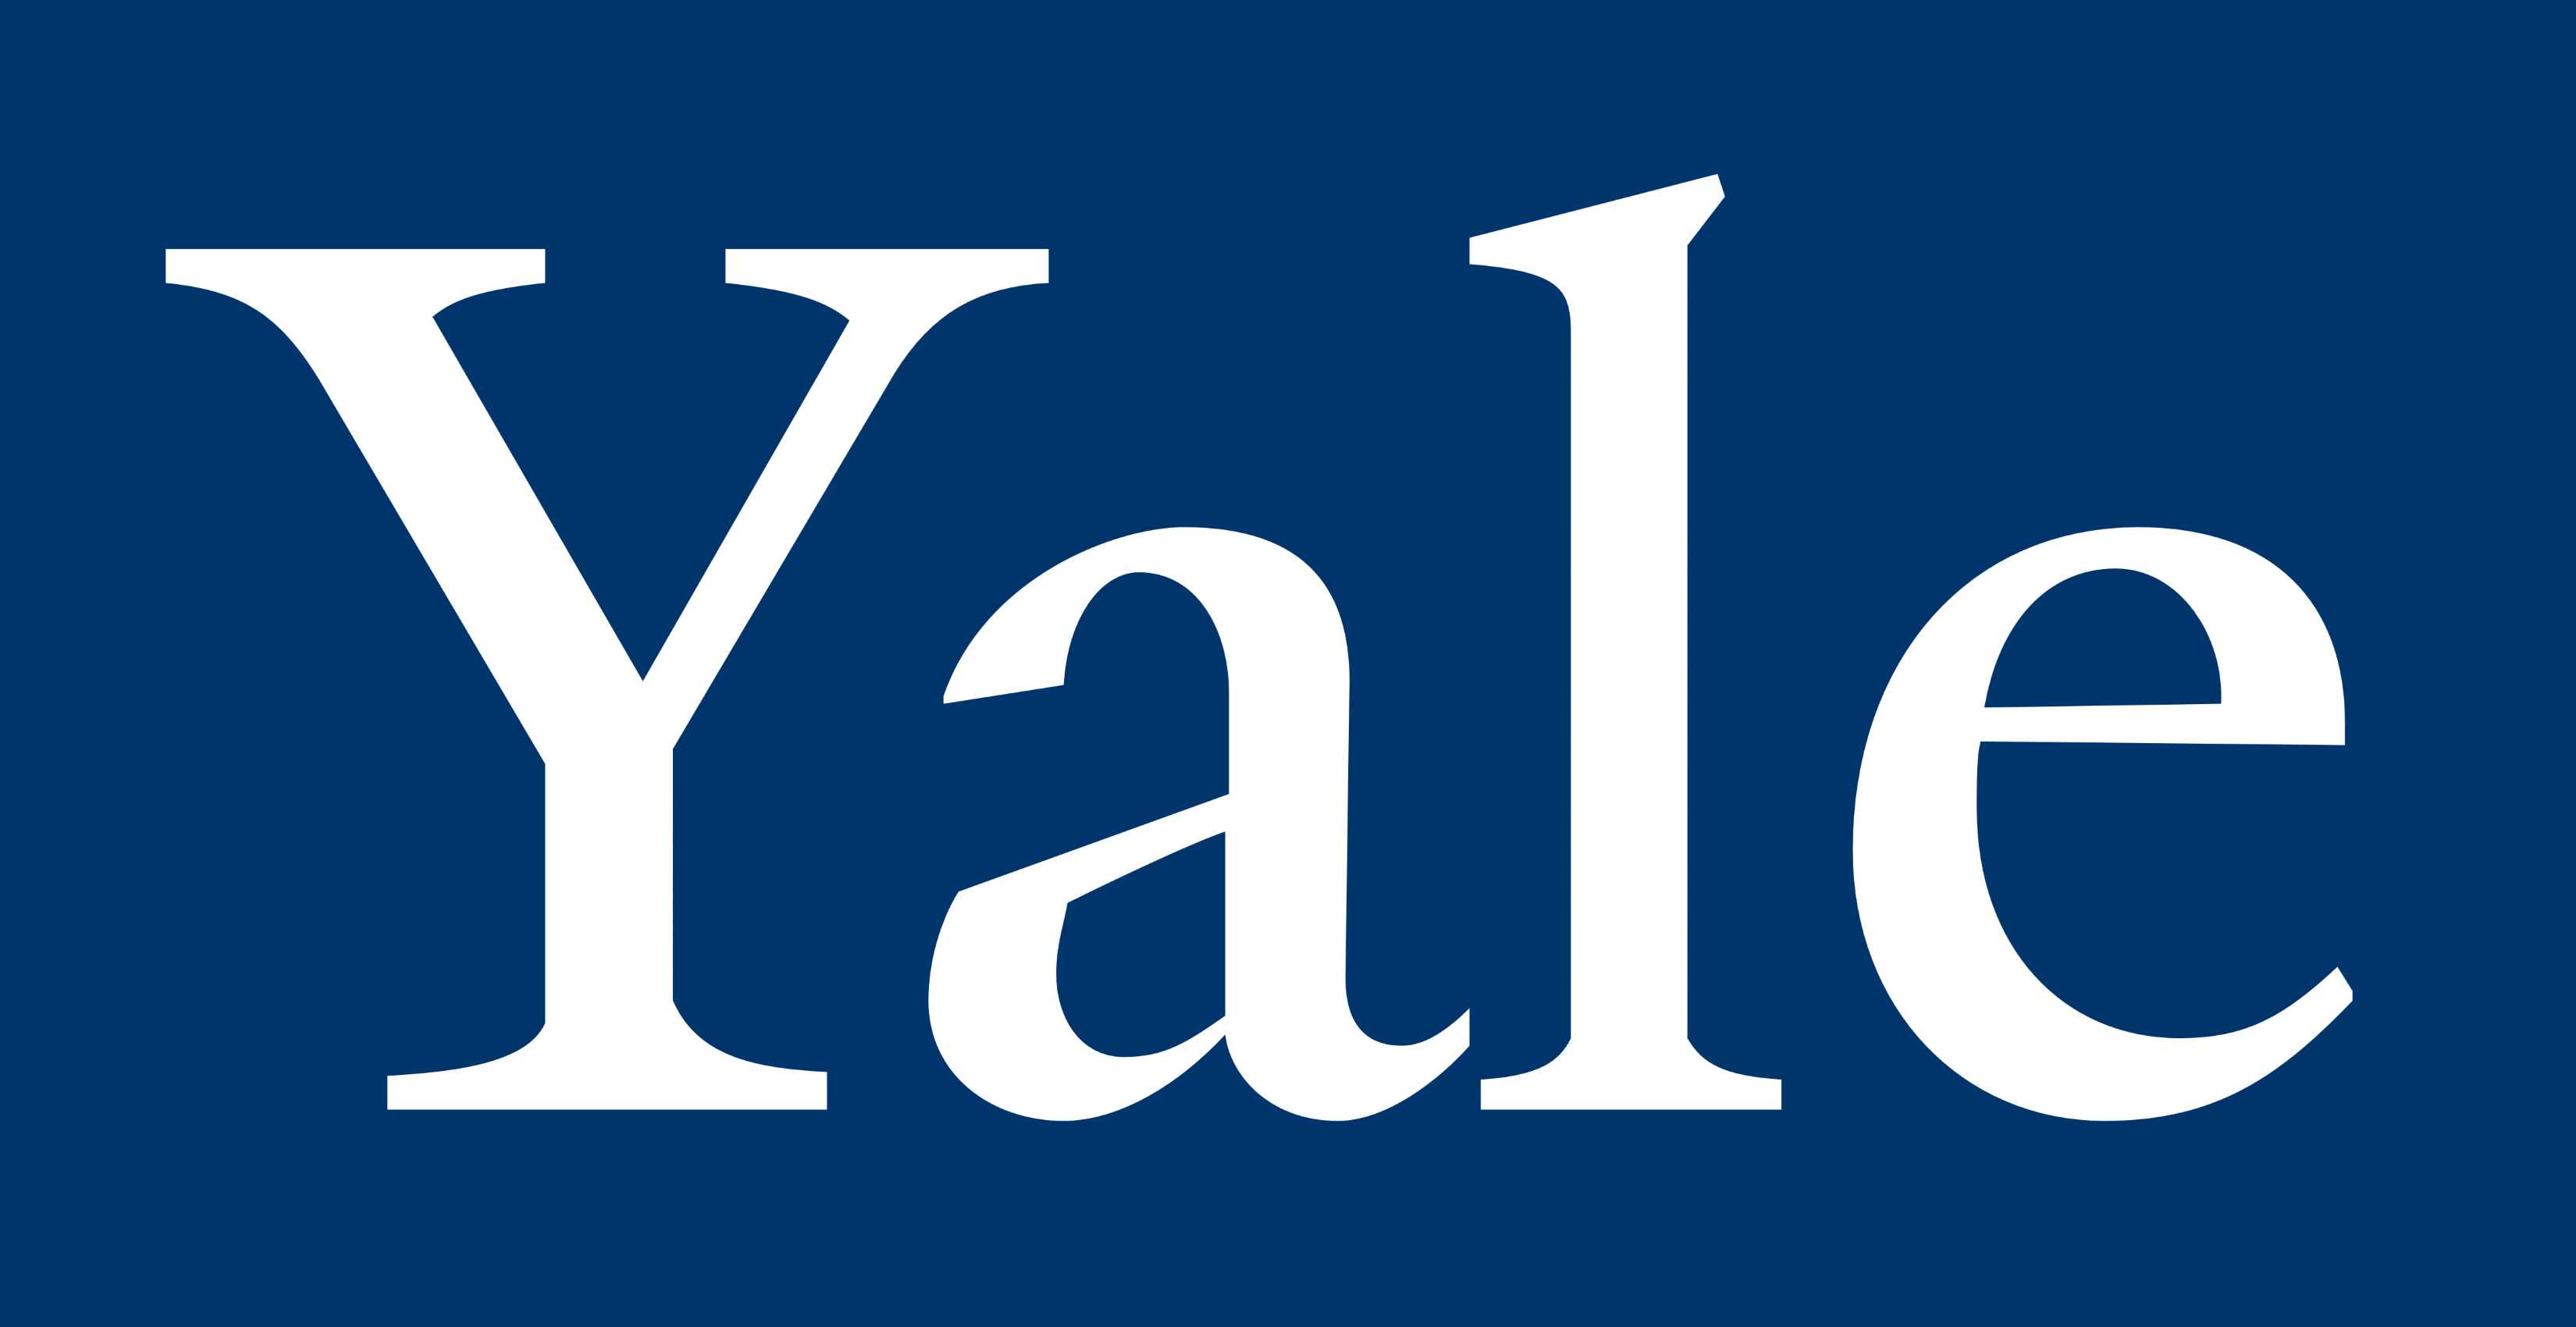 Yale Logo - Yale University – Logos Download